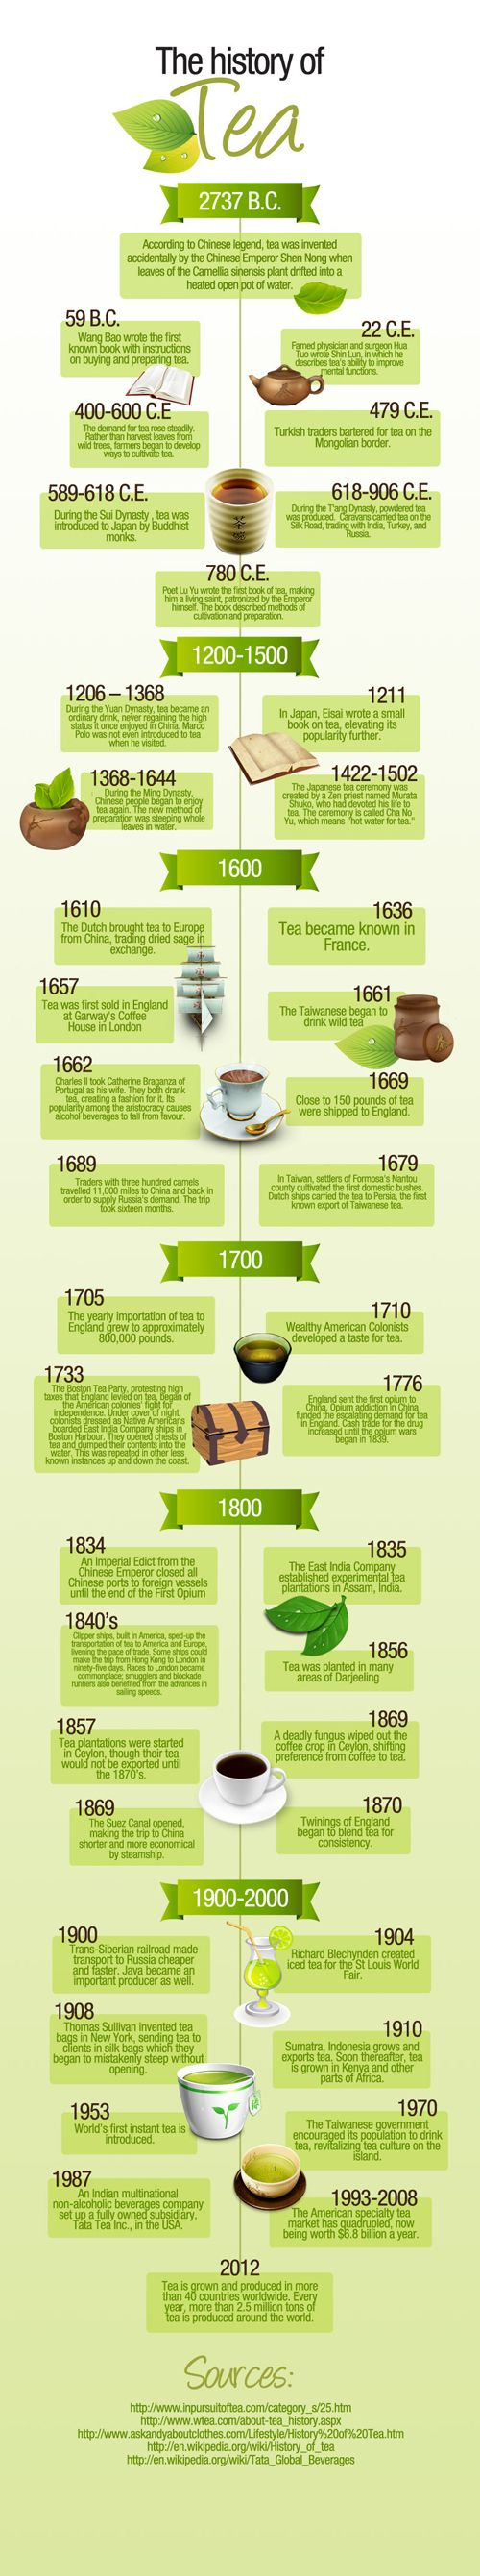 The History of Tea – Infographic on http://www.bestinfographic.co.uk